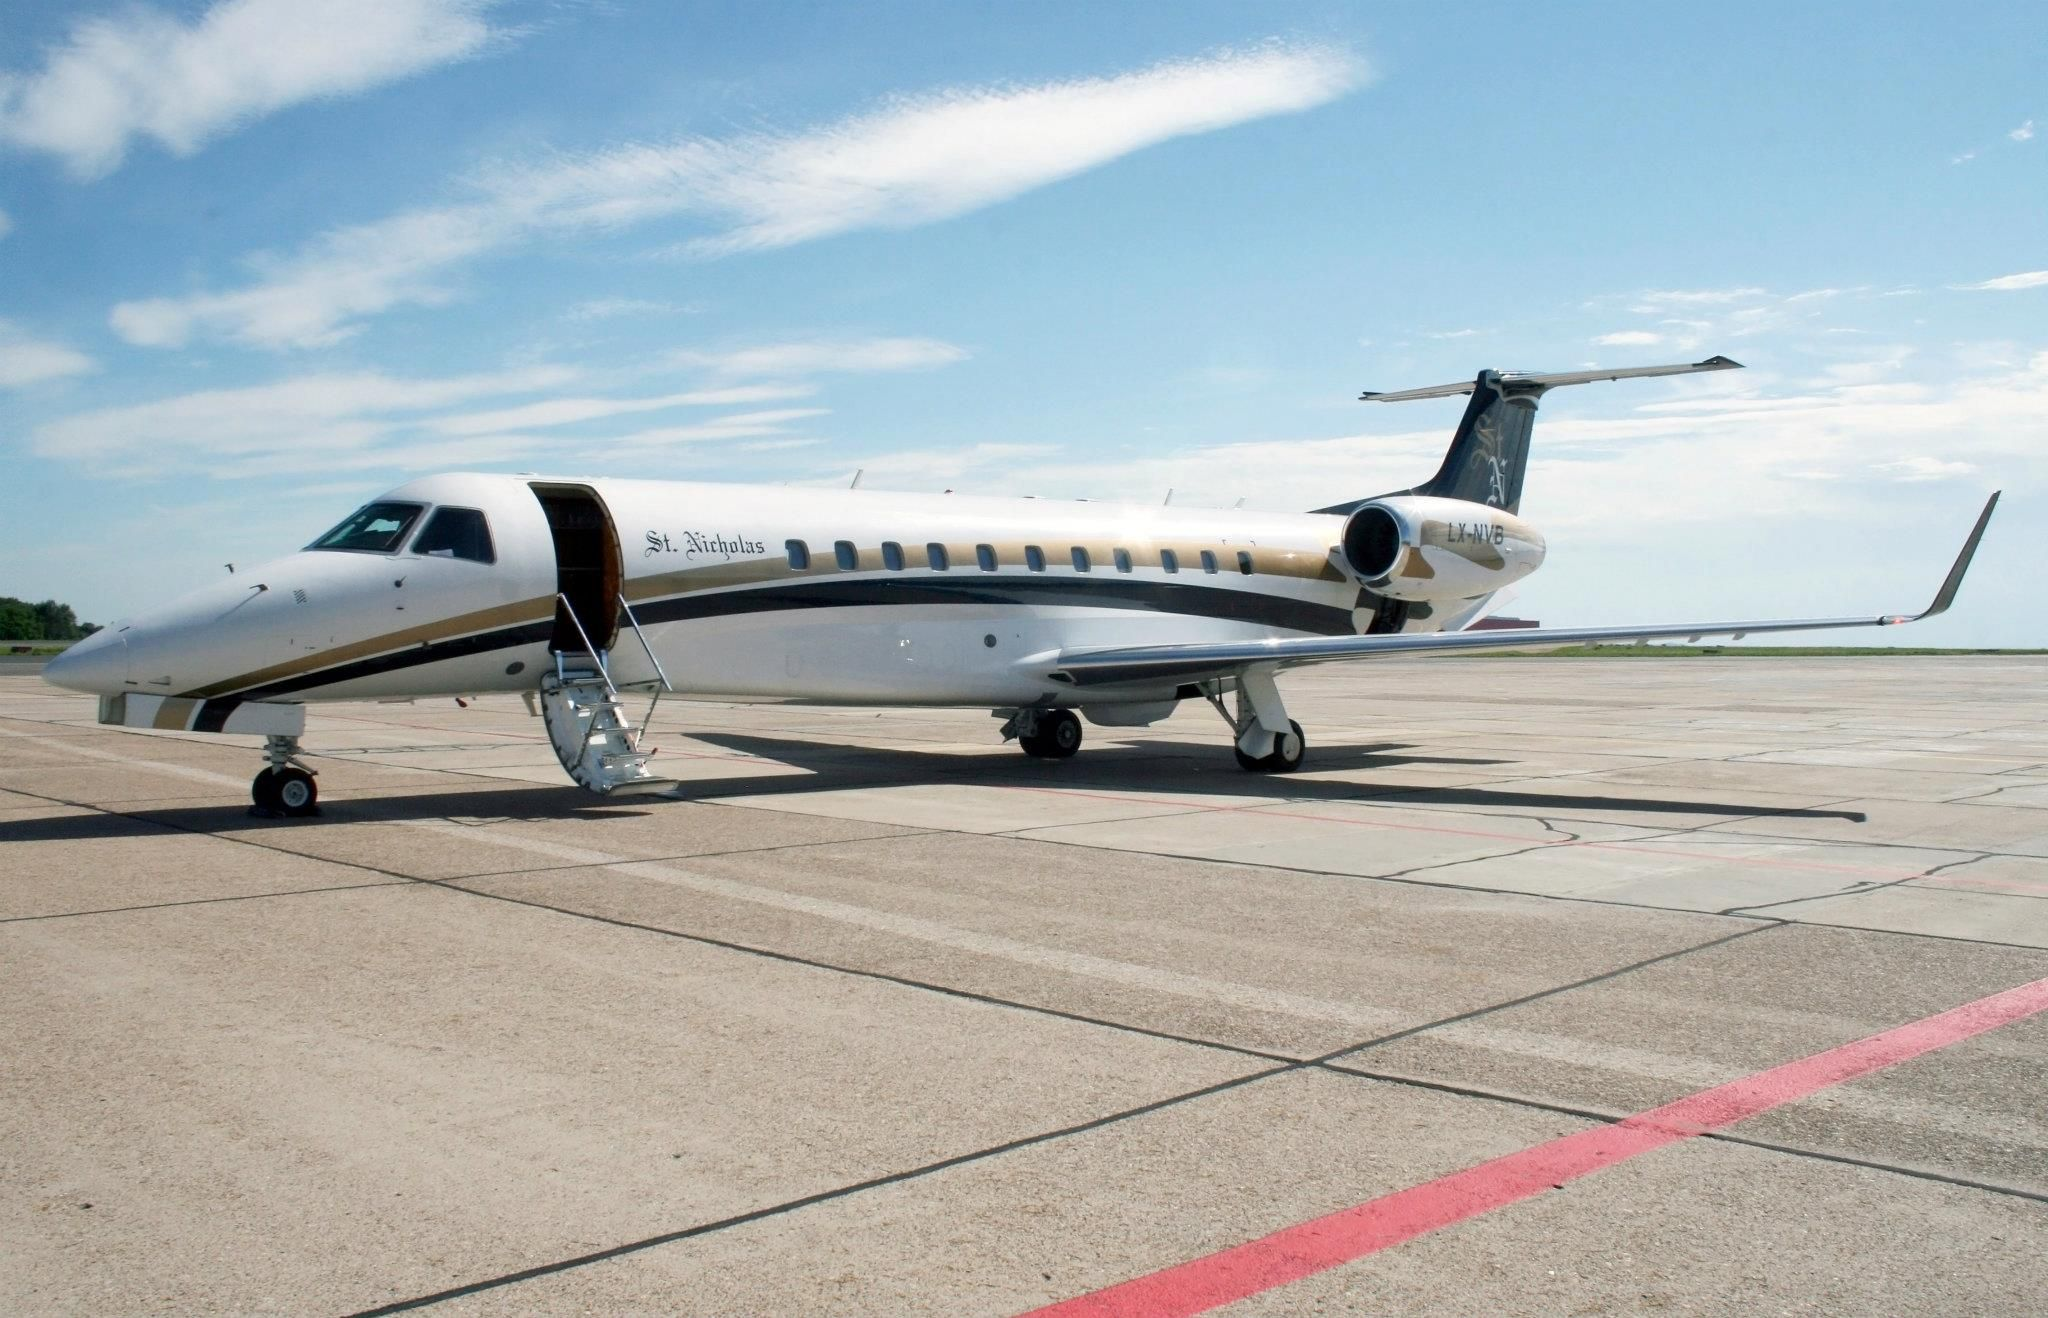 CharterA Ltd jet charter uses the best aircraft in its